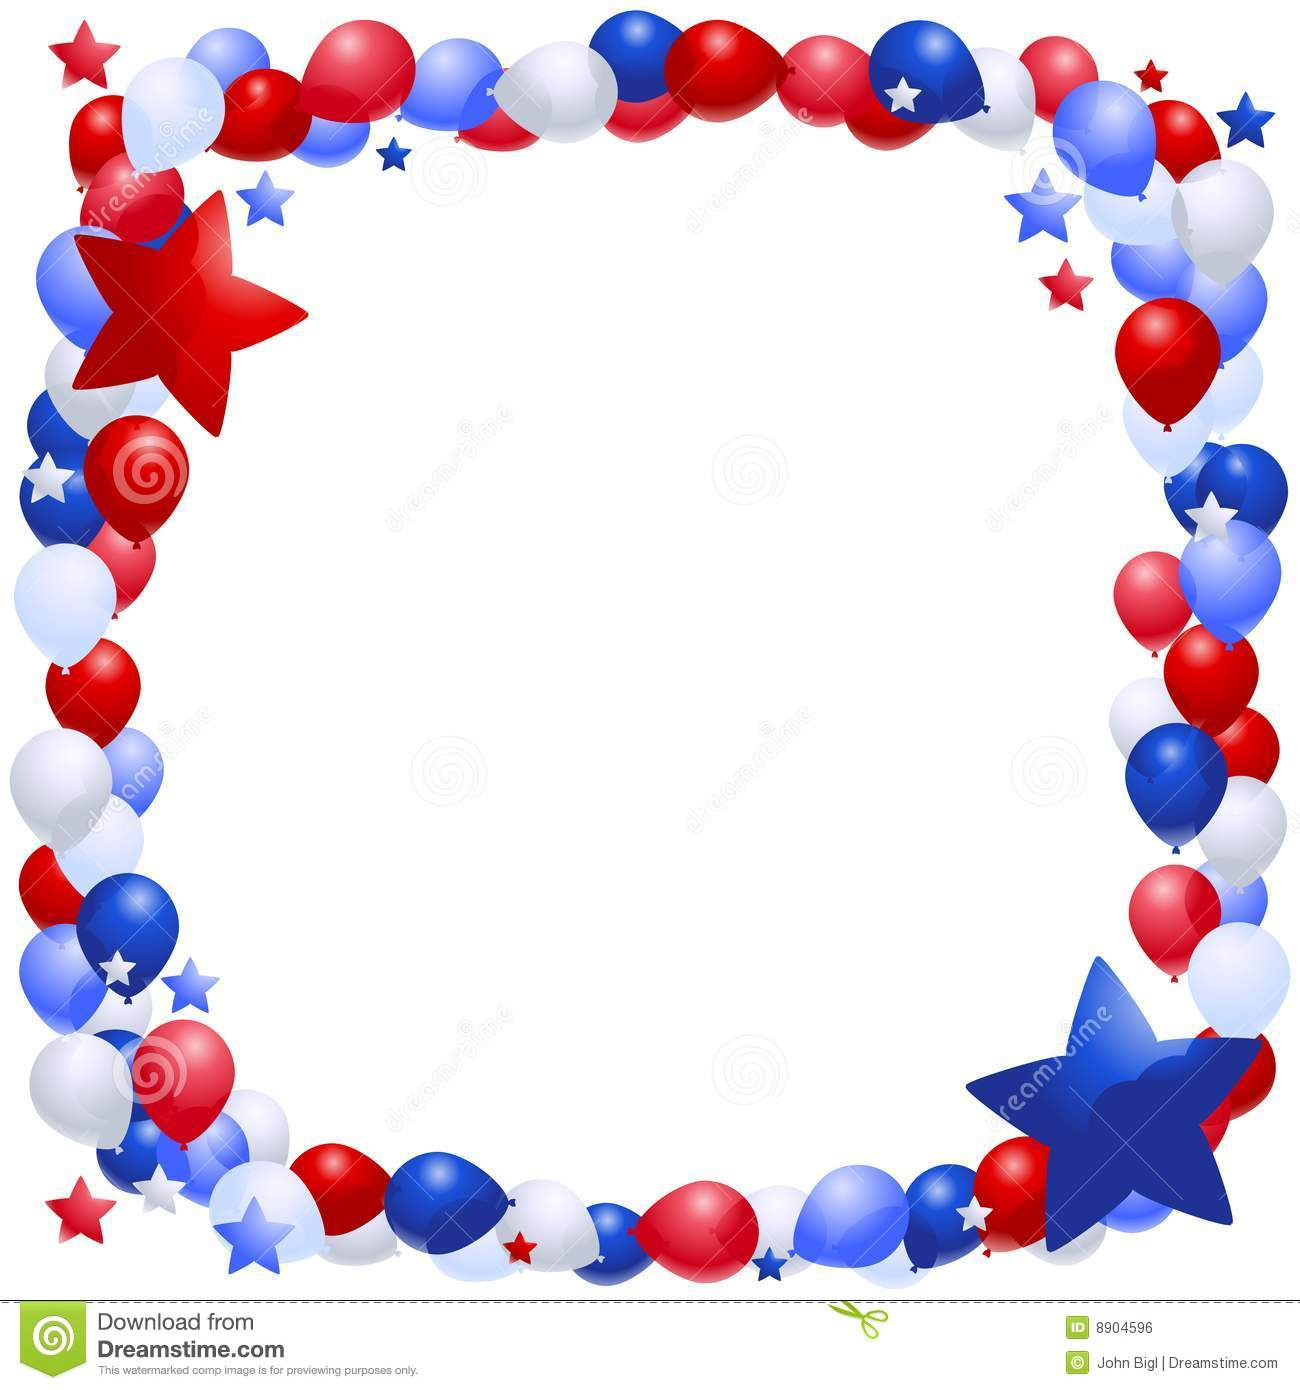 patriotic balloon frame royalty free stock image